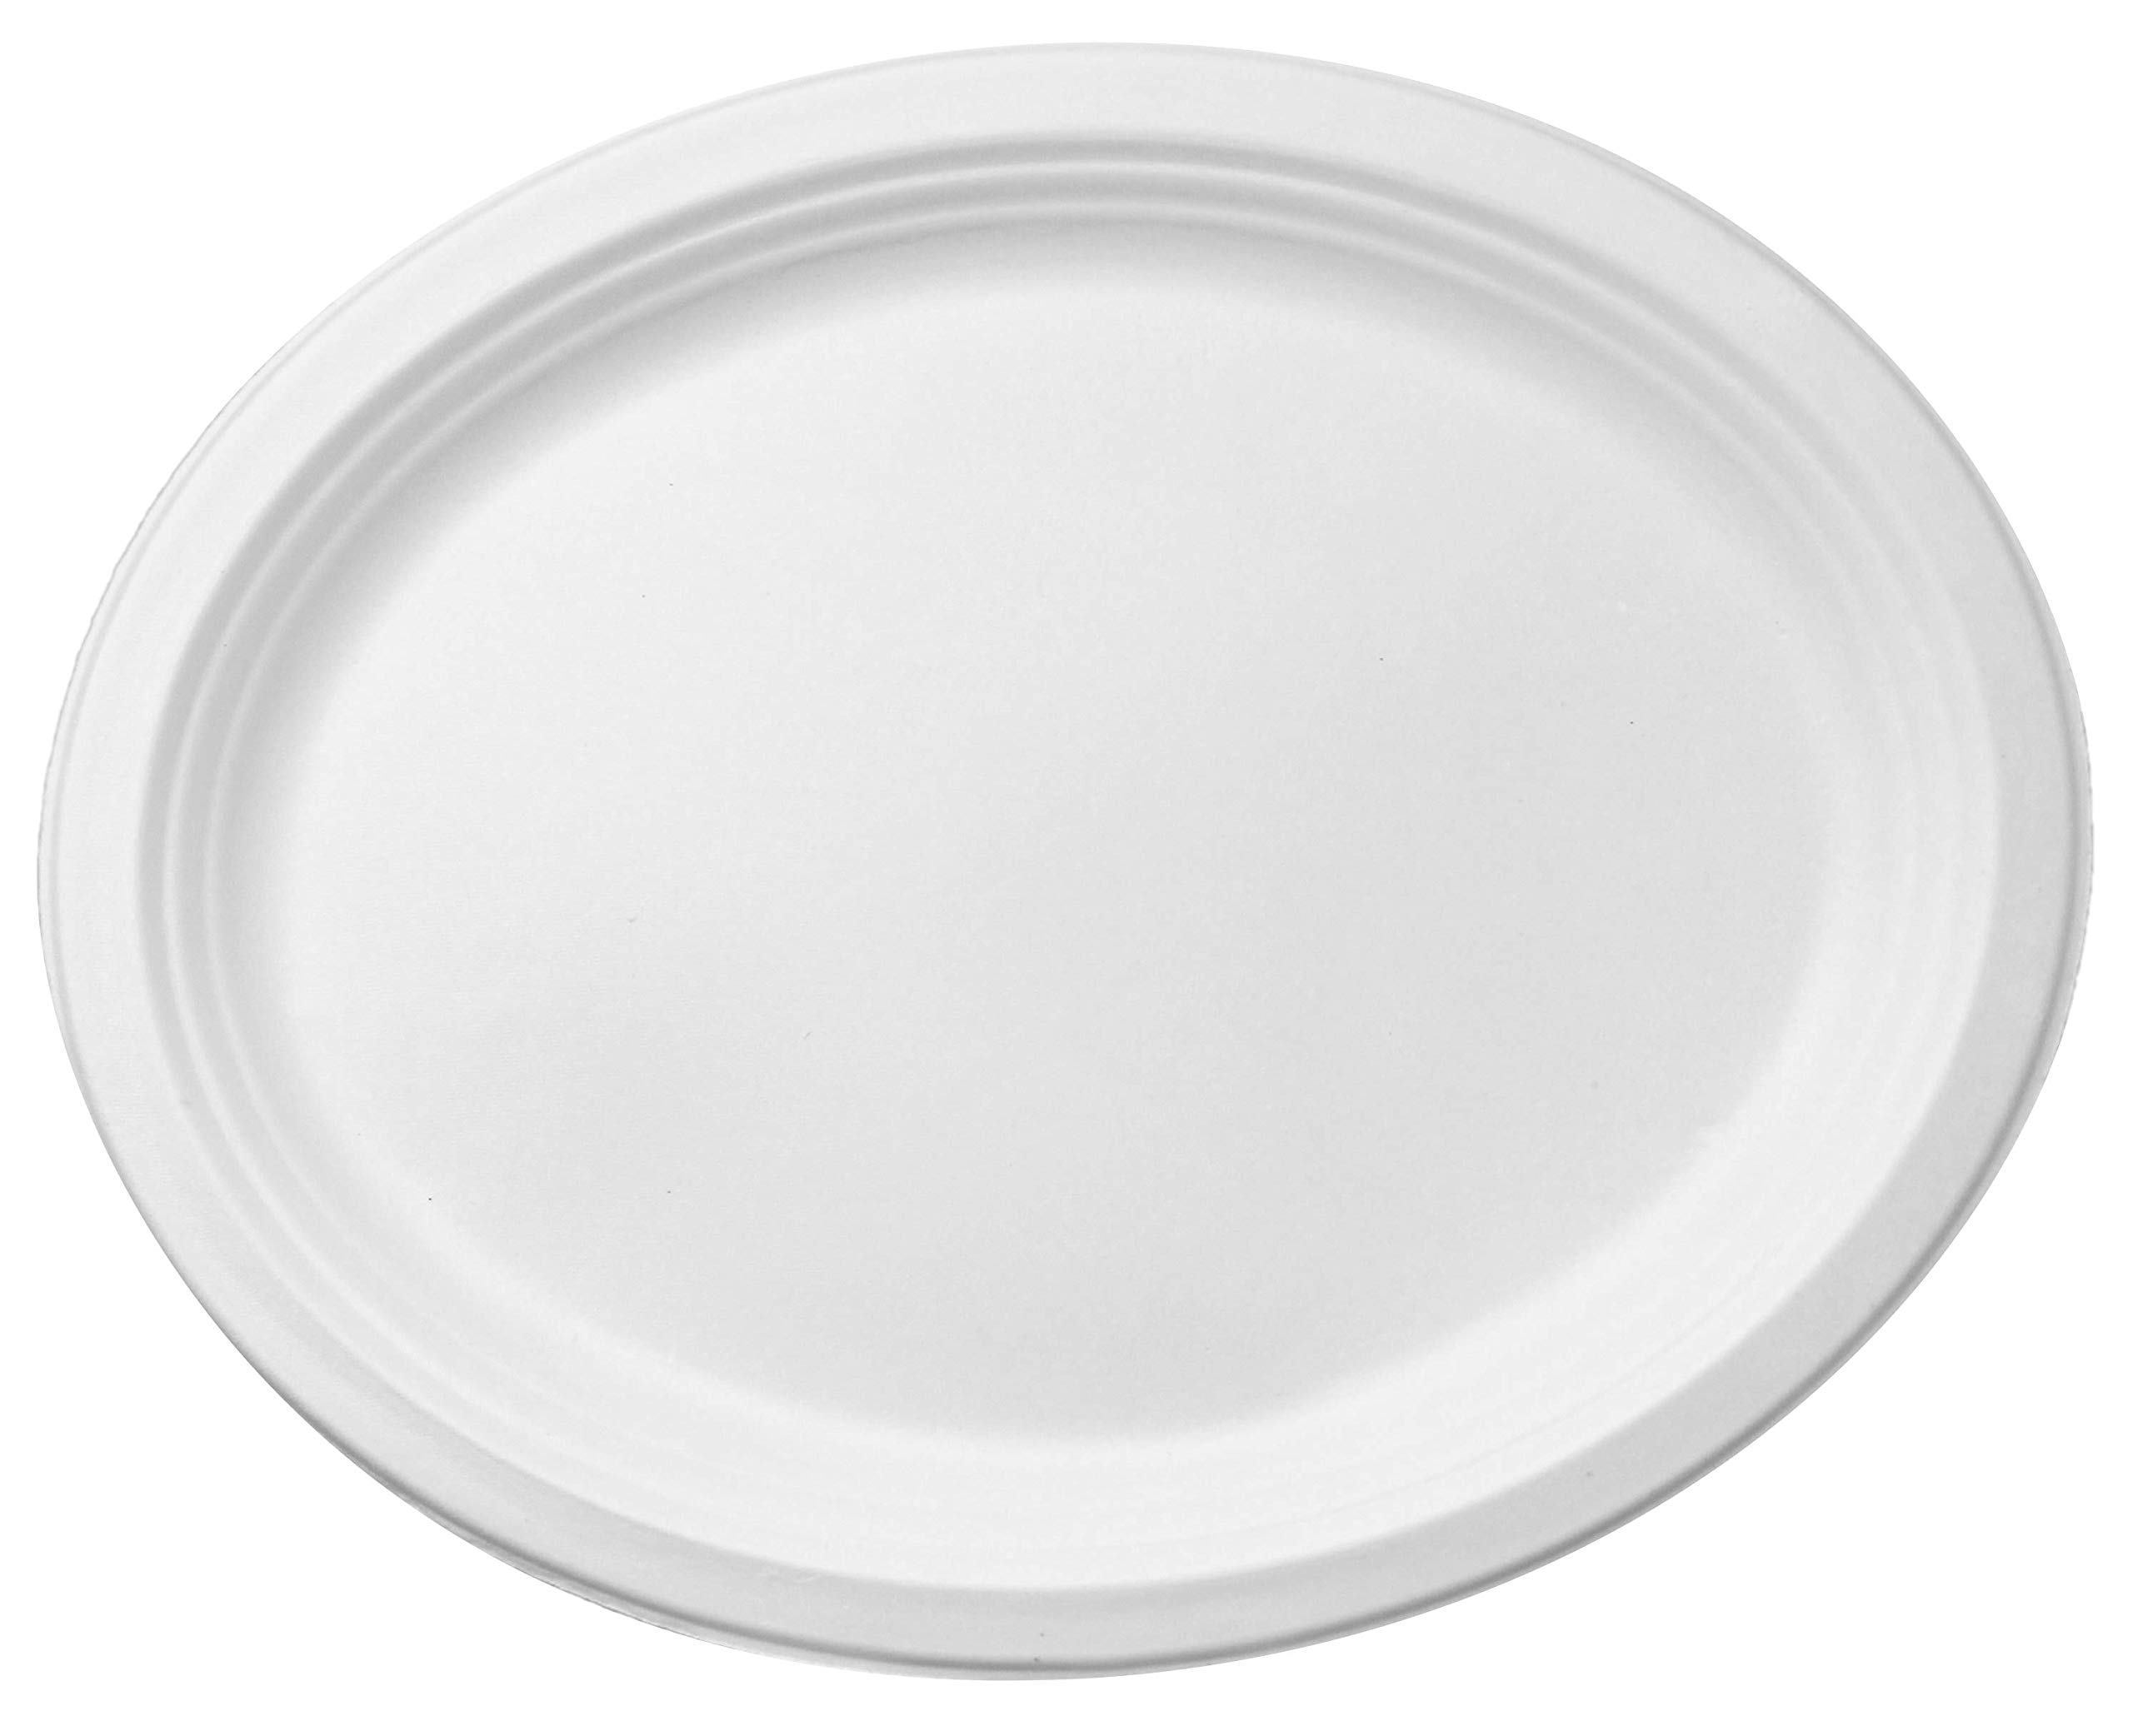 100% Compostable White Oval 12.5-inch Paper Platters, 60-Plates, Heavy-Duty Premium Quality Disposable Dinner Plate by Famaston